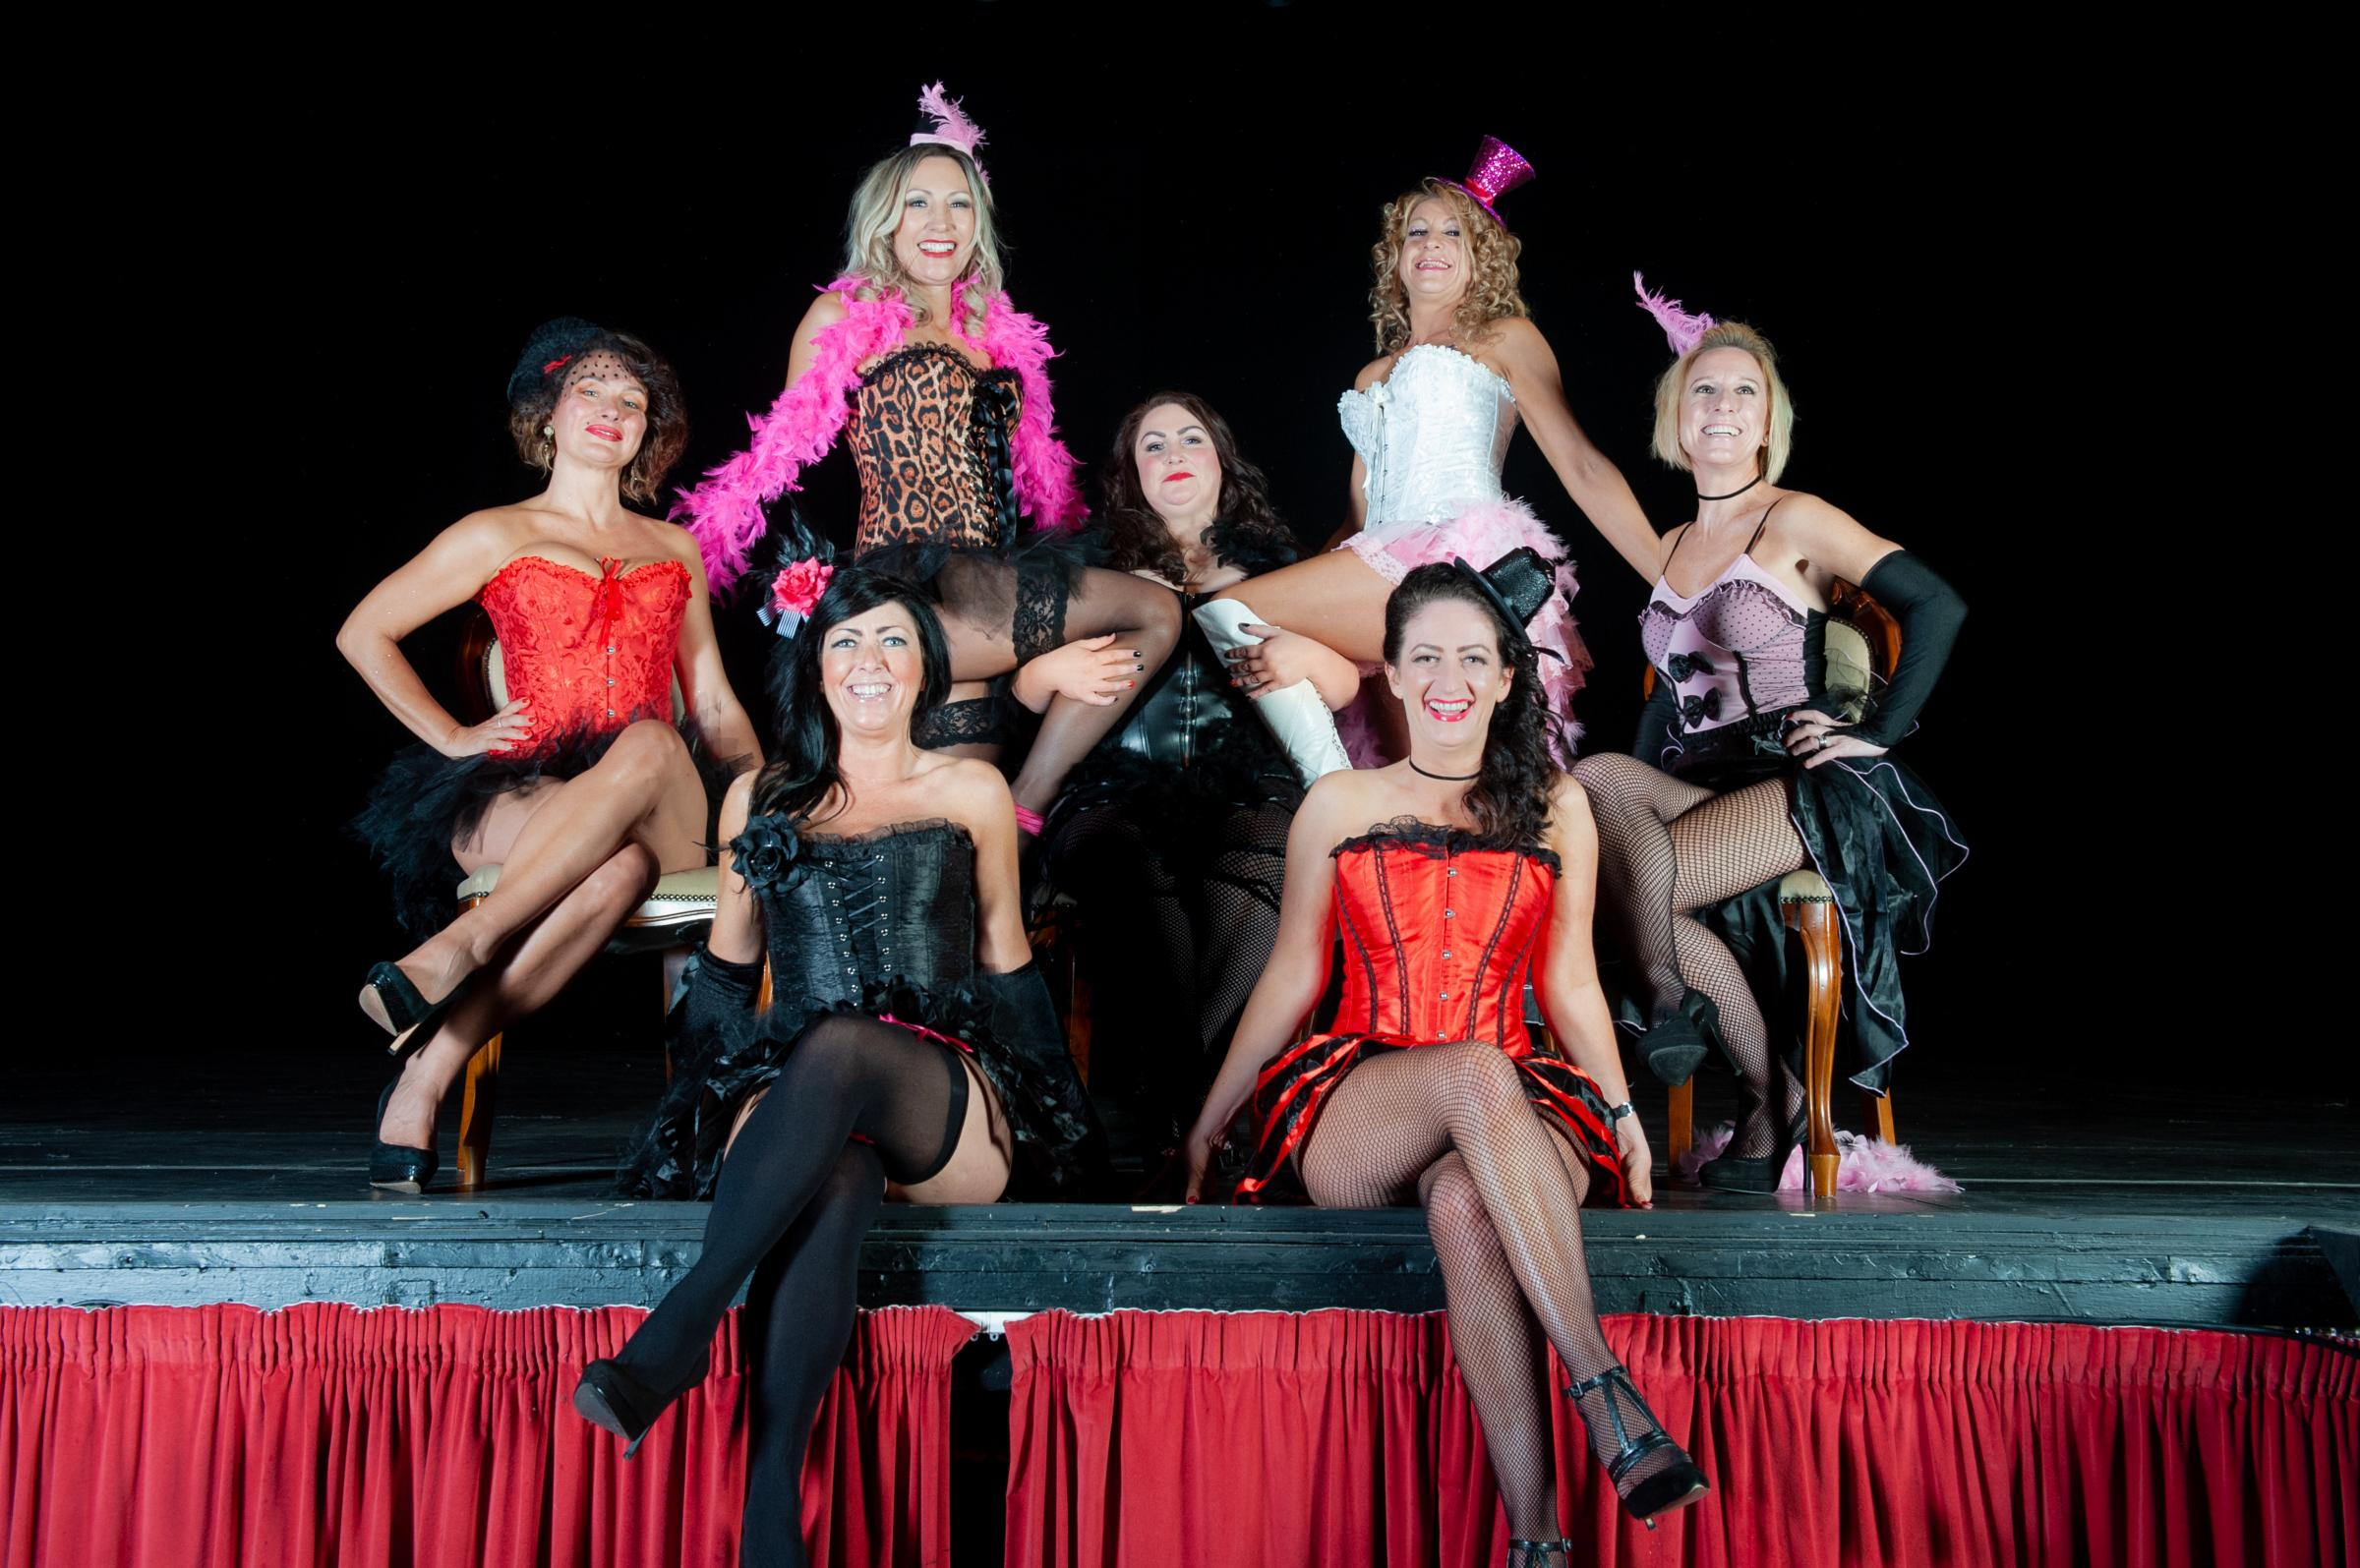 Burlesque calendar shoot a positive focus in aid of Cancer Research UK